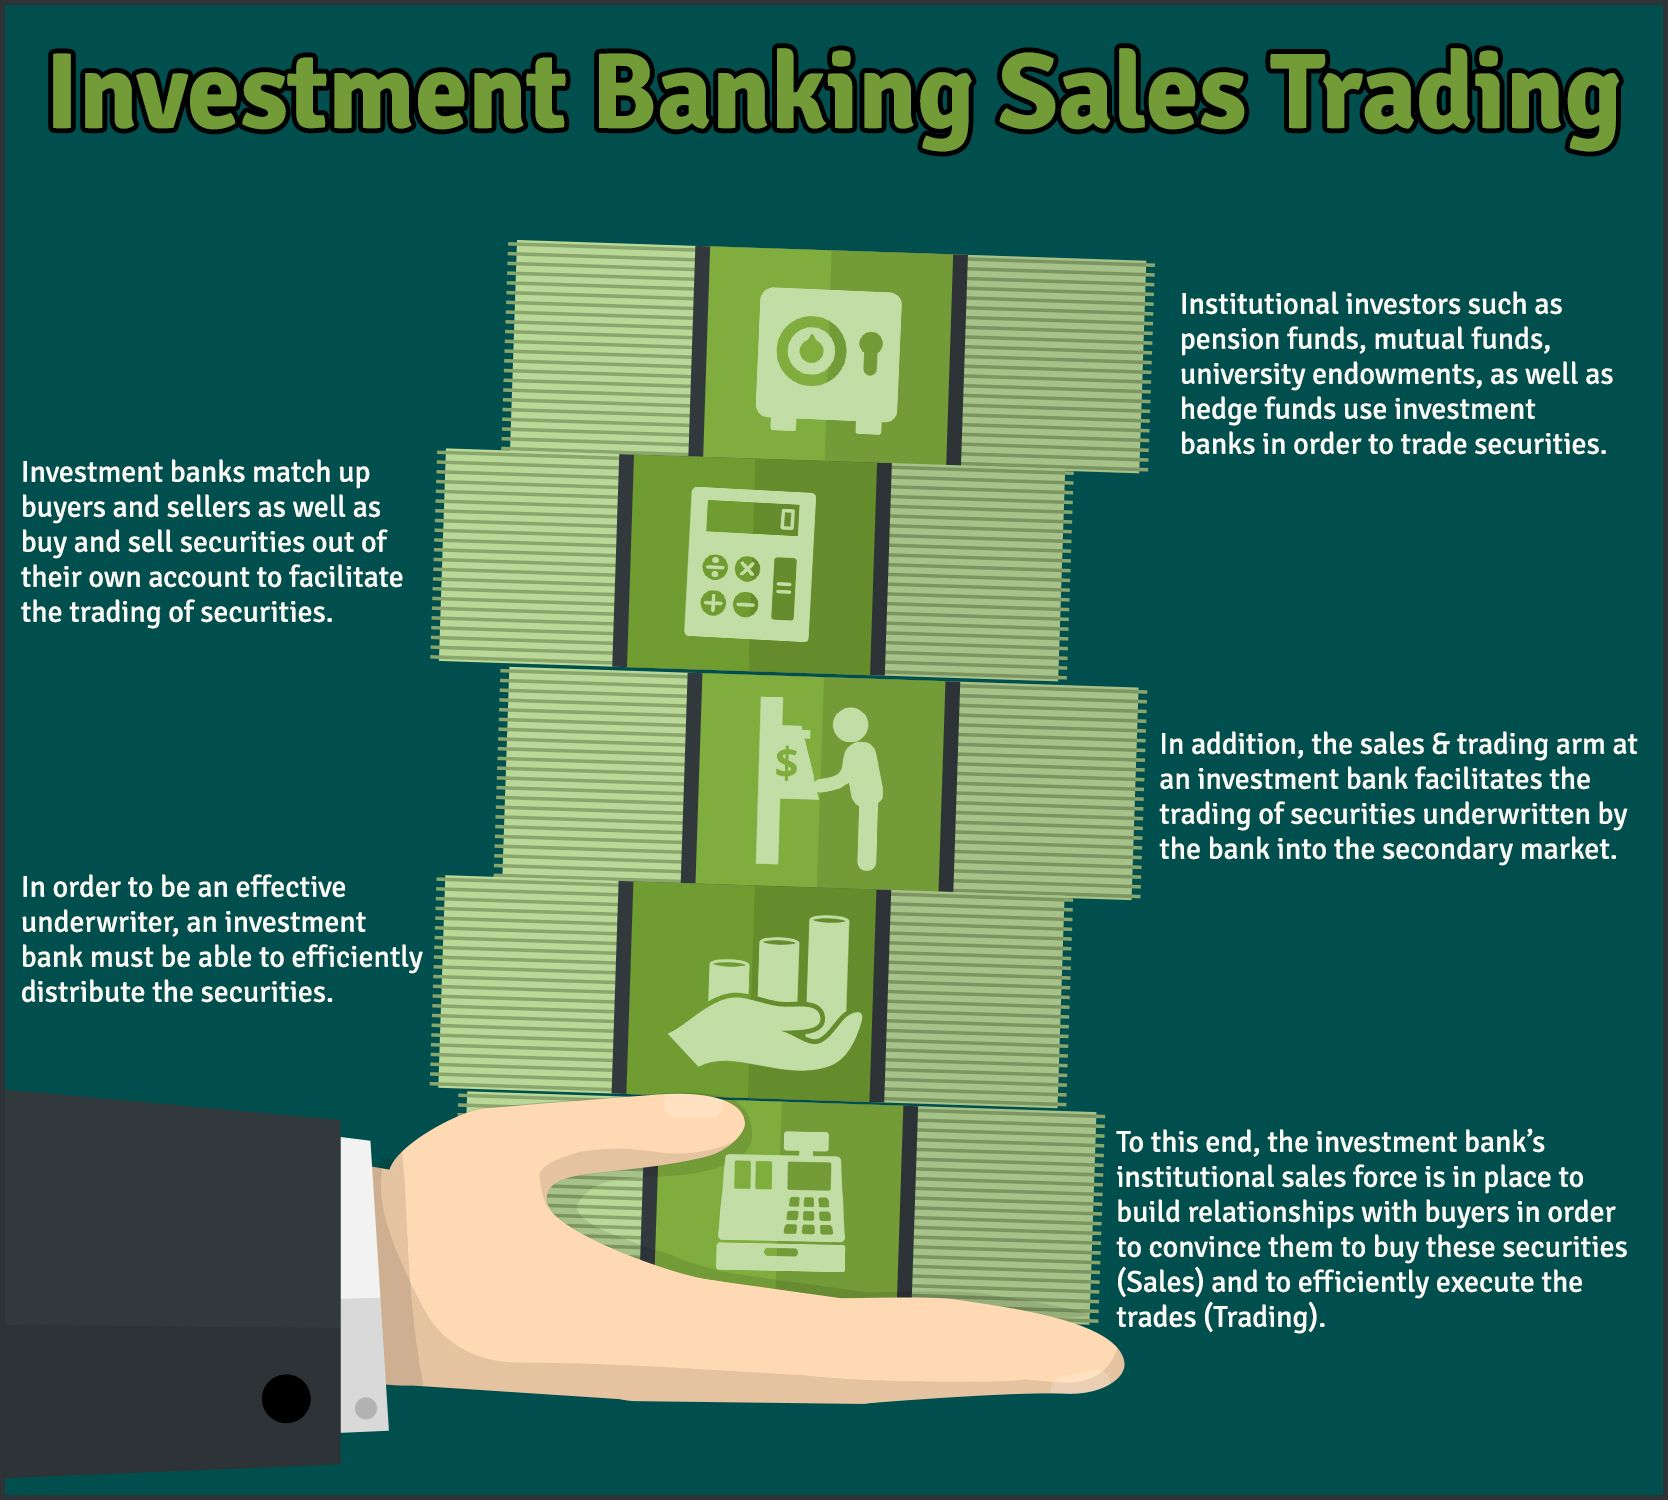 The Sales Trading Arm At An Investment Bank Performs Numerous